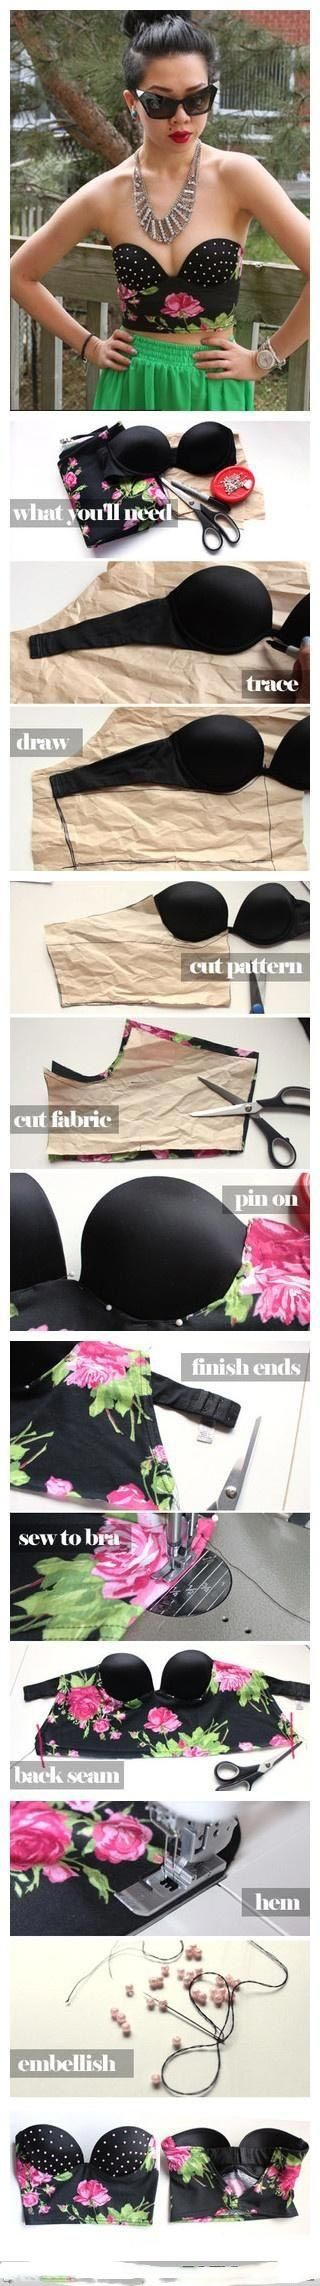 DIY bustier - for when it will cost less and take less time to make your own than find one that fits right!